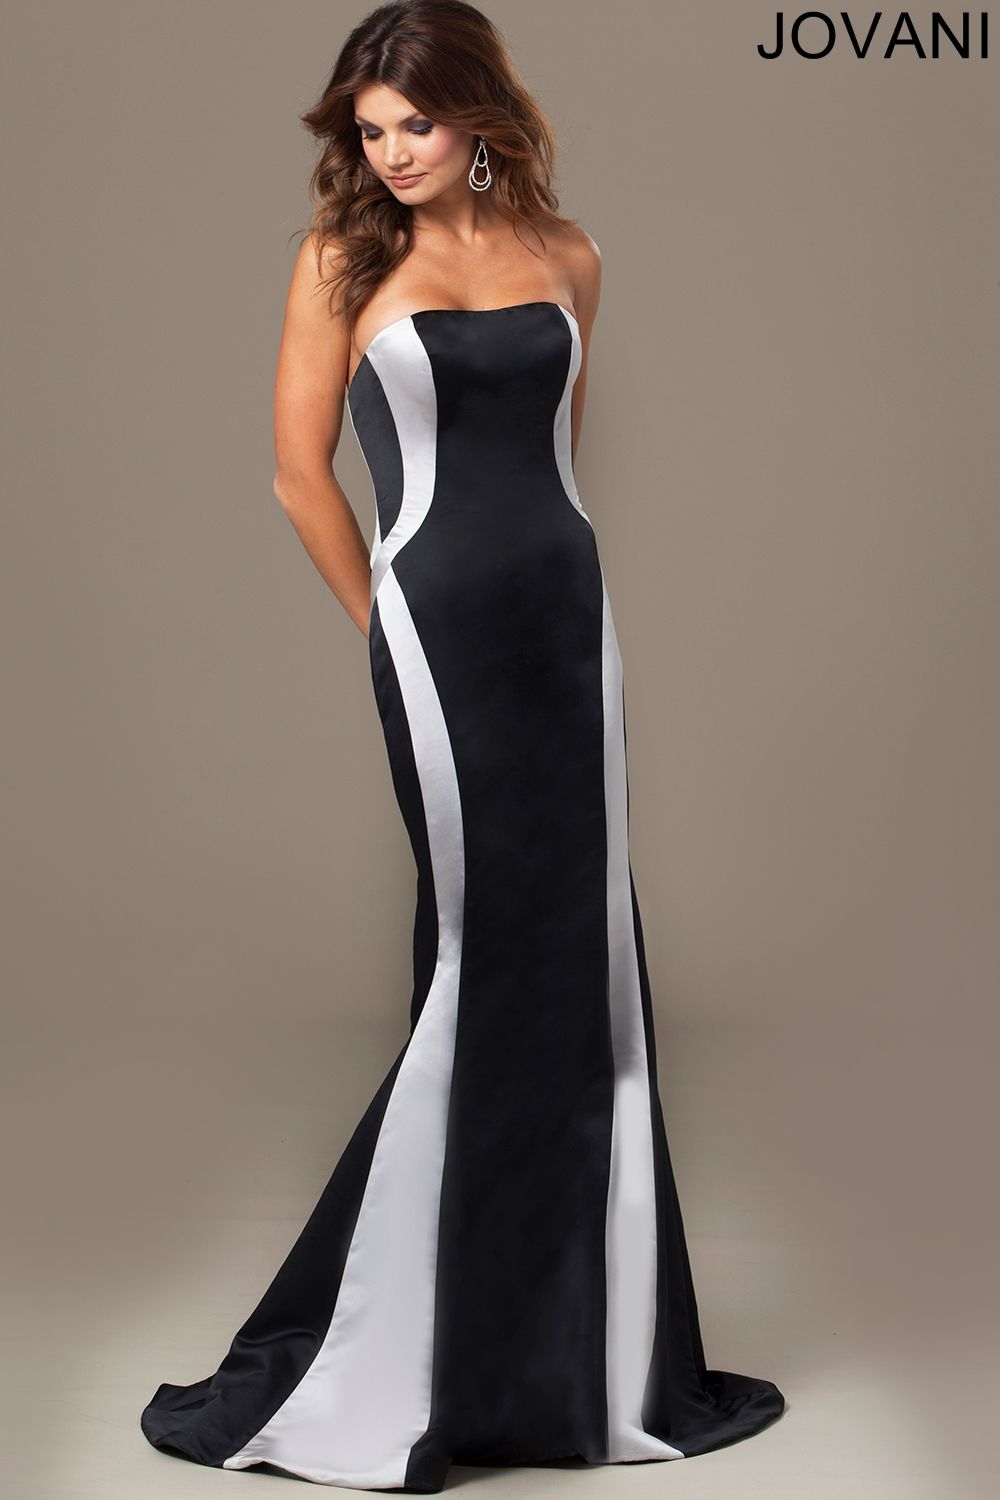 Twotoned satin defines the paneled sheath silhouette of jovani